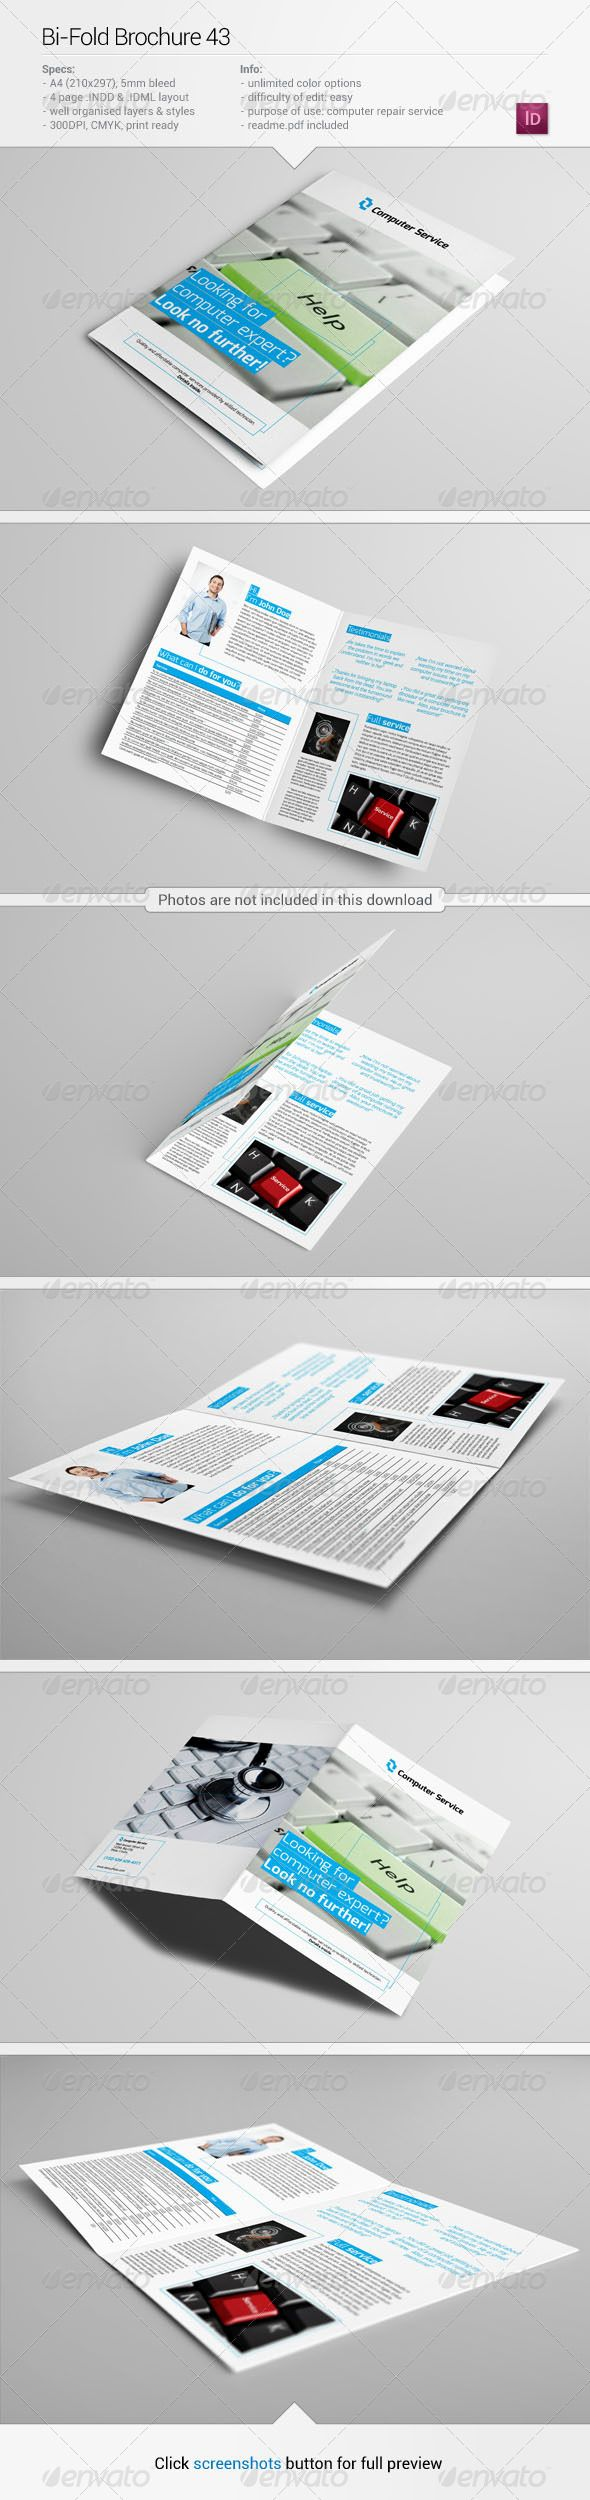 Bi-Fold Brochure 43 by Demorfoza                                                                                                     About this item Description: